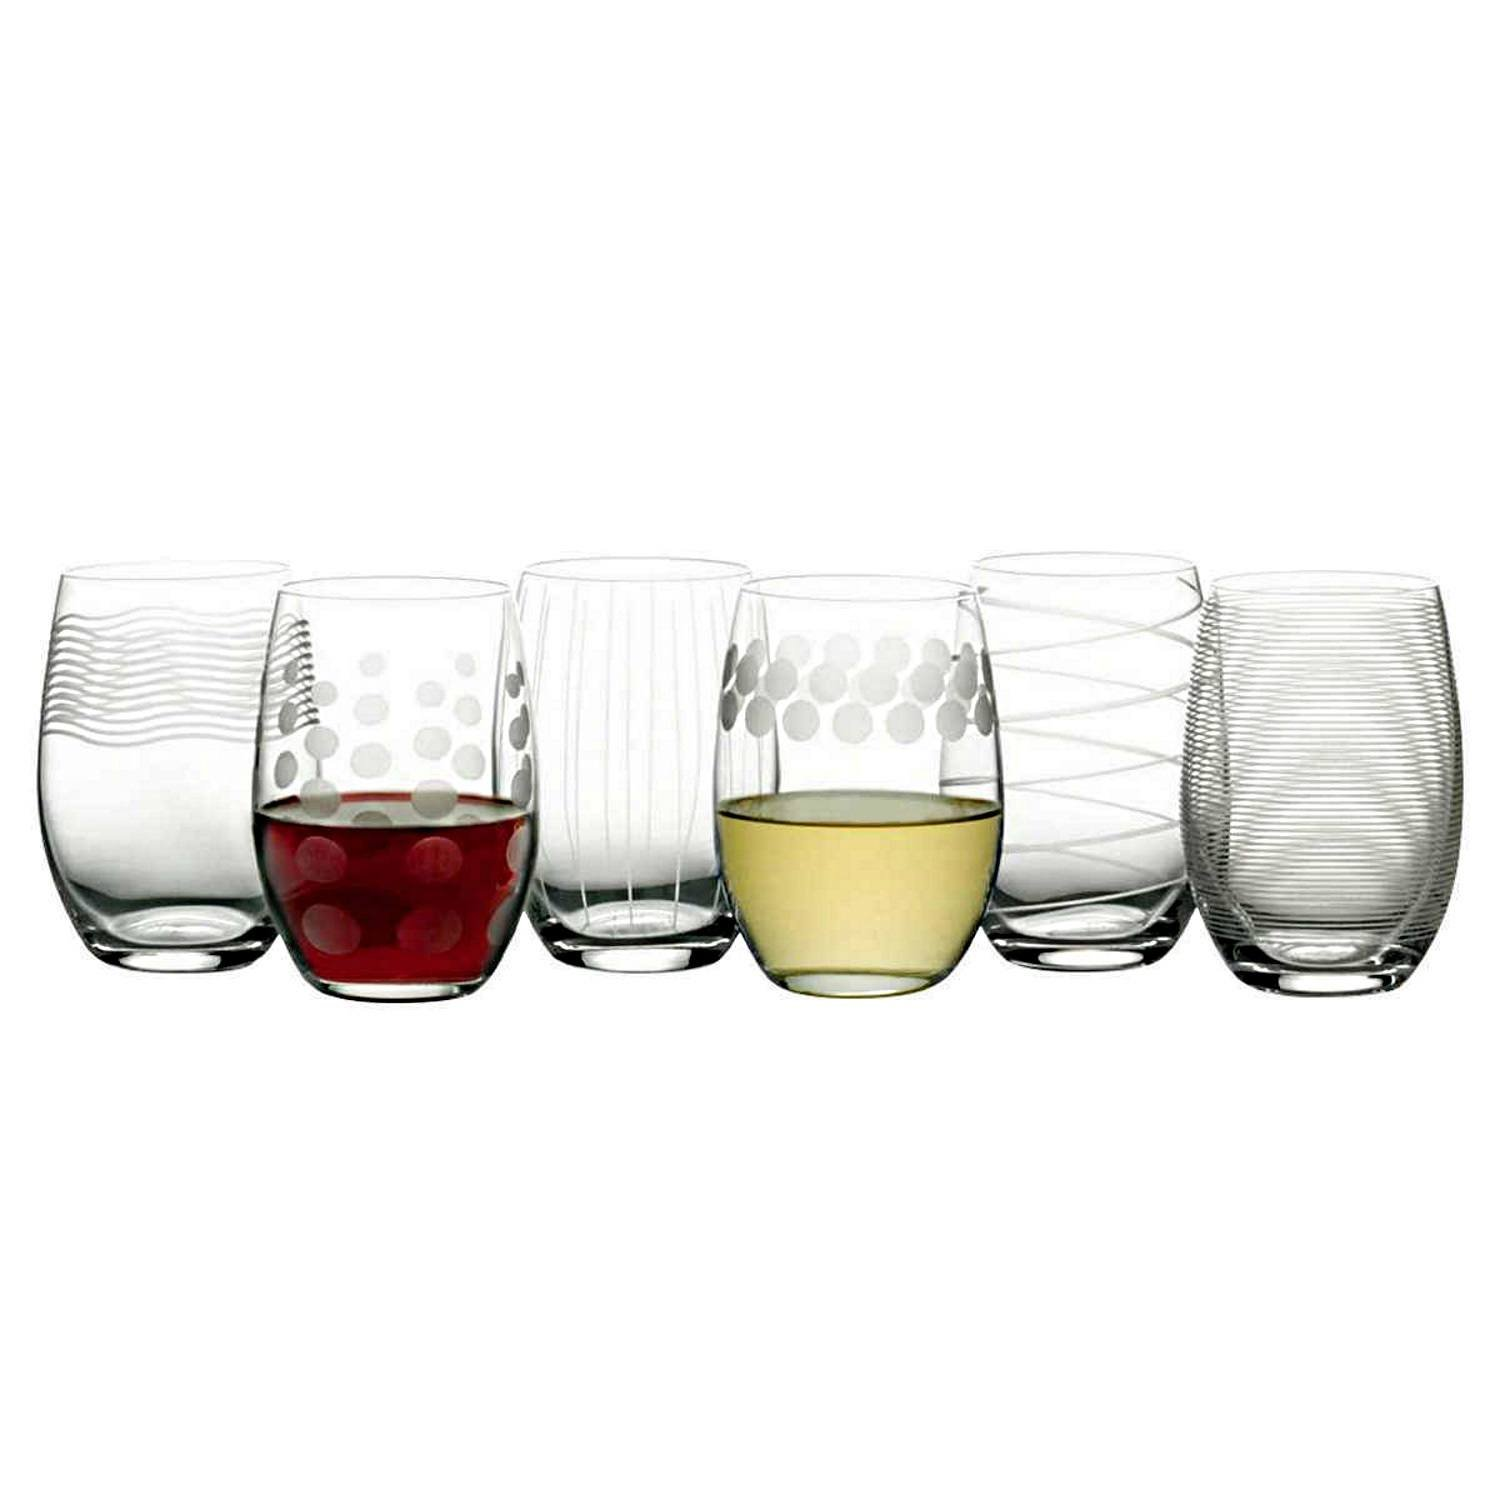 Mikasa Cheers Stemless Etched Wine Glasses, Fine European Lead-Free Crystal, 17-Ounces for Red or White Wine - Set of 6 by Mikasa (Image #1)